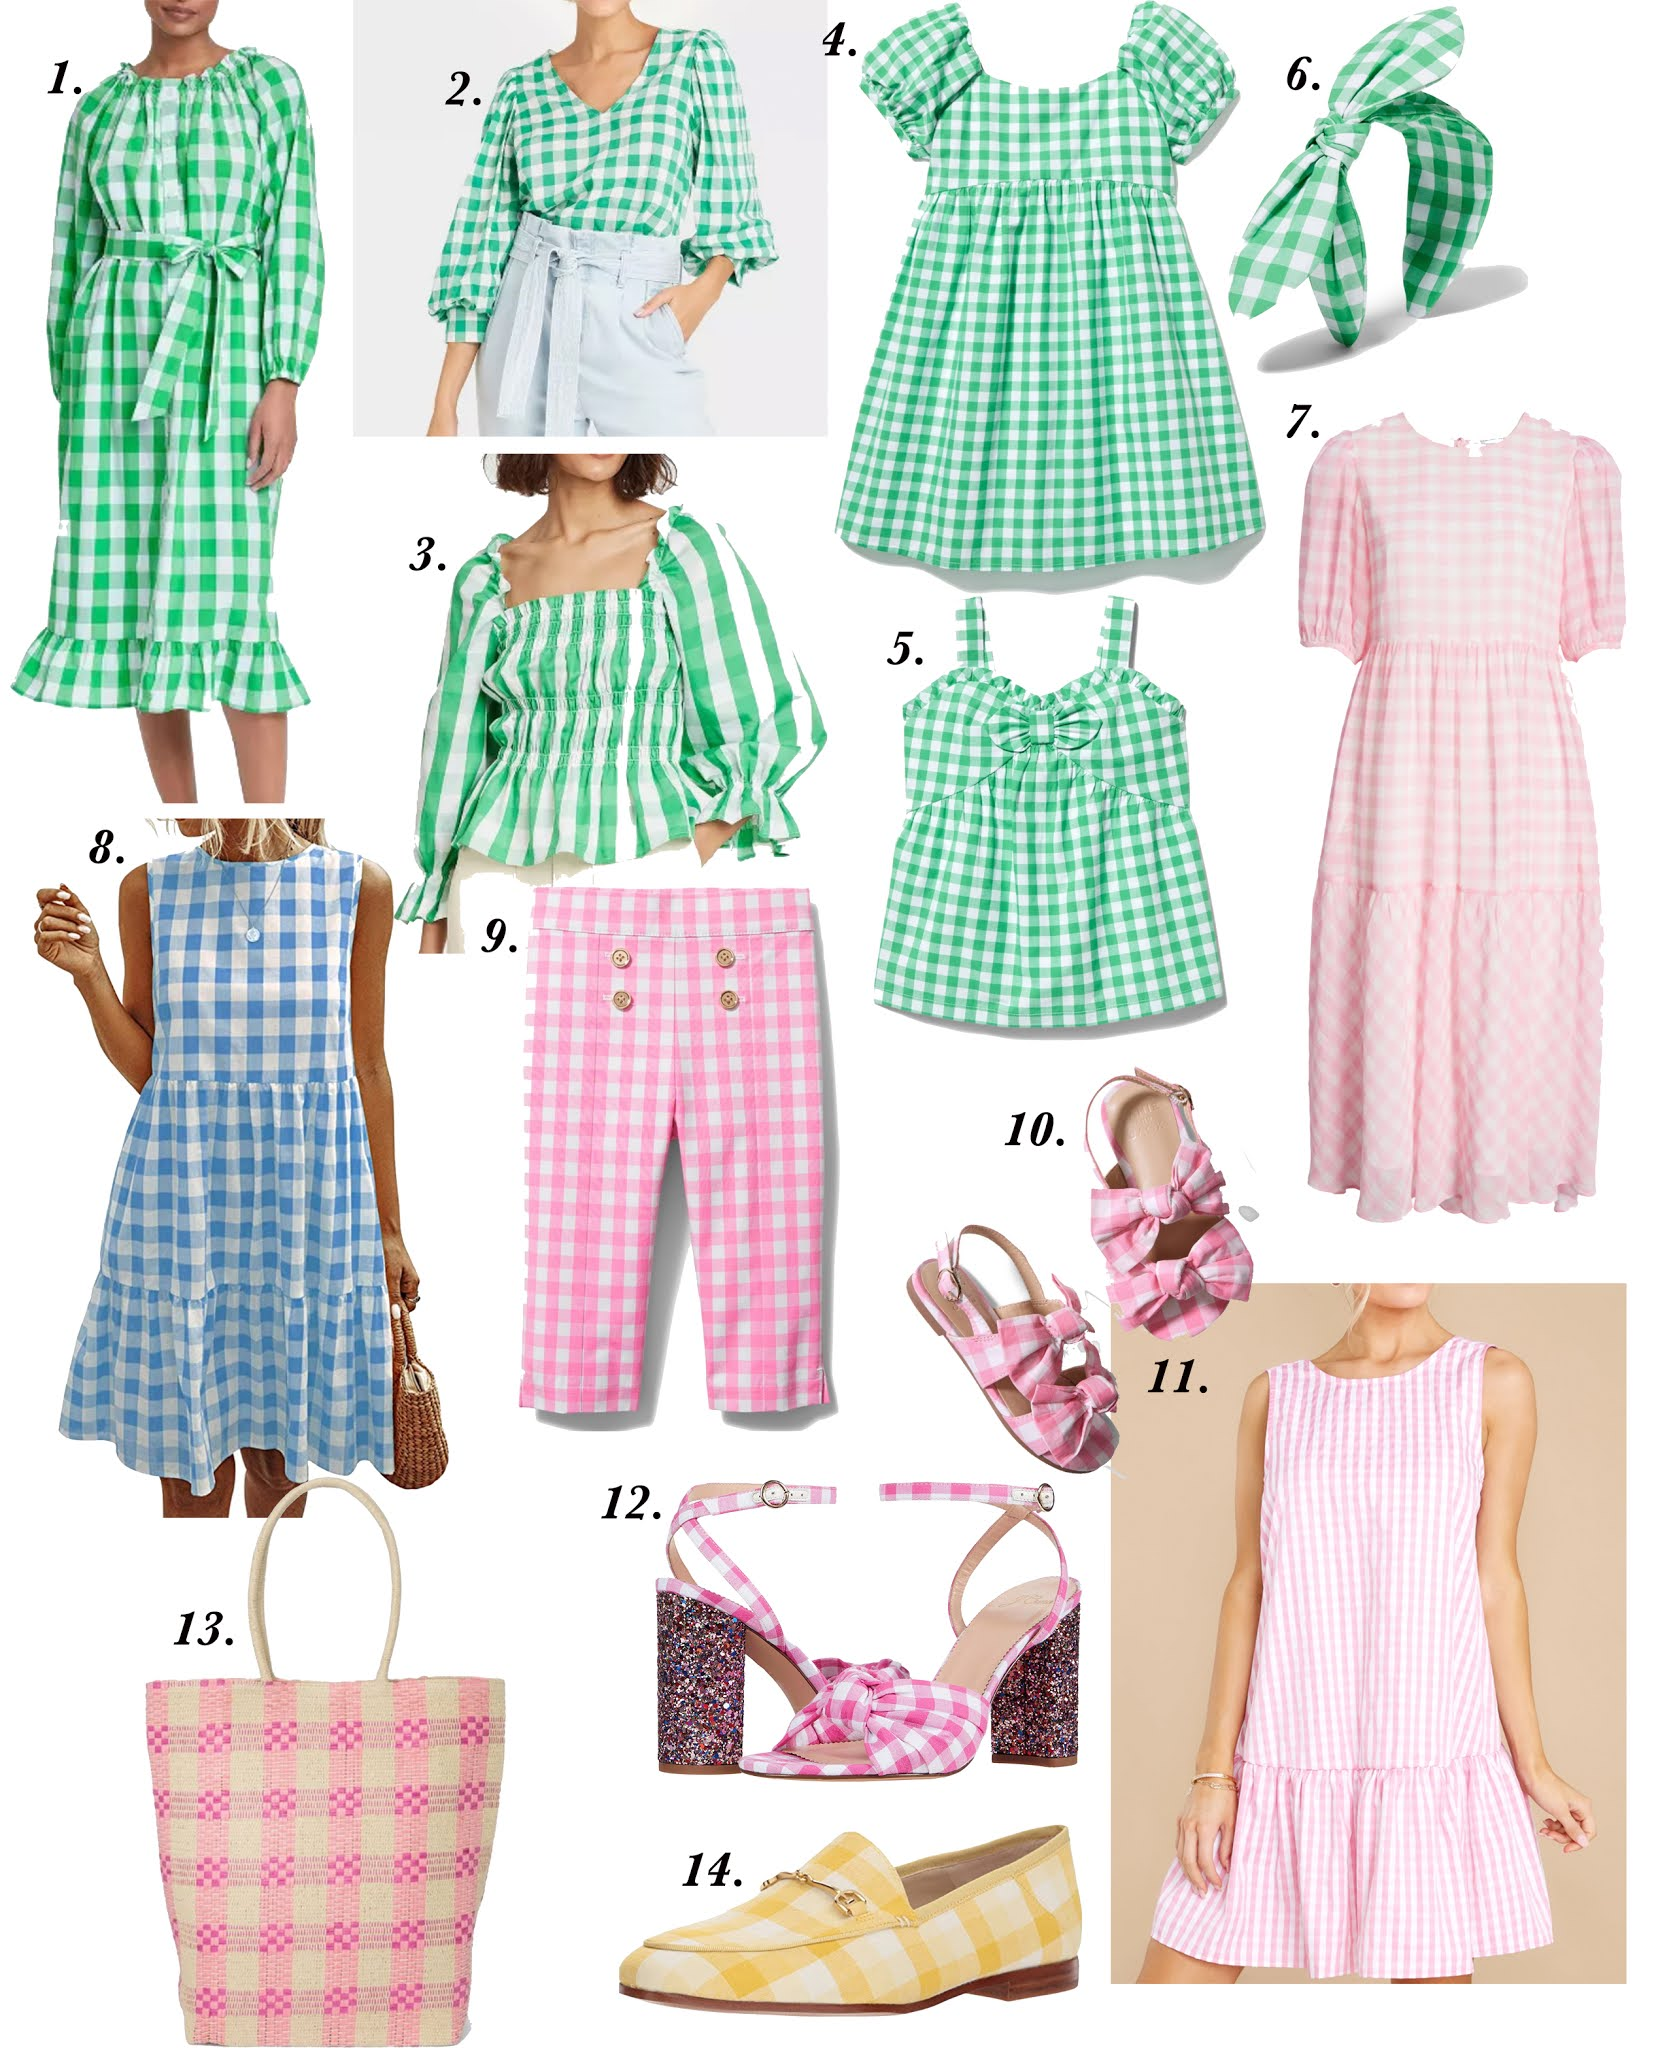 2021 Spring fashion trends. Gingham pieces for women and kids. Target style. J.Crew. Something Delightful Blog. New arrivals for spring.  - Something Delightful Blog #targetstyle #springstyle #somethingdelightfulblog #gingham